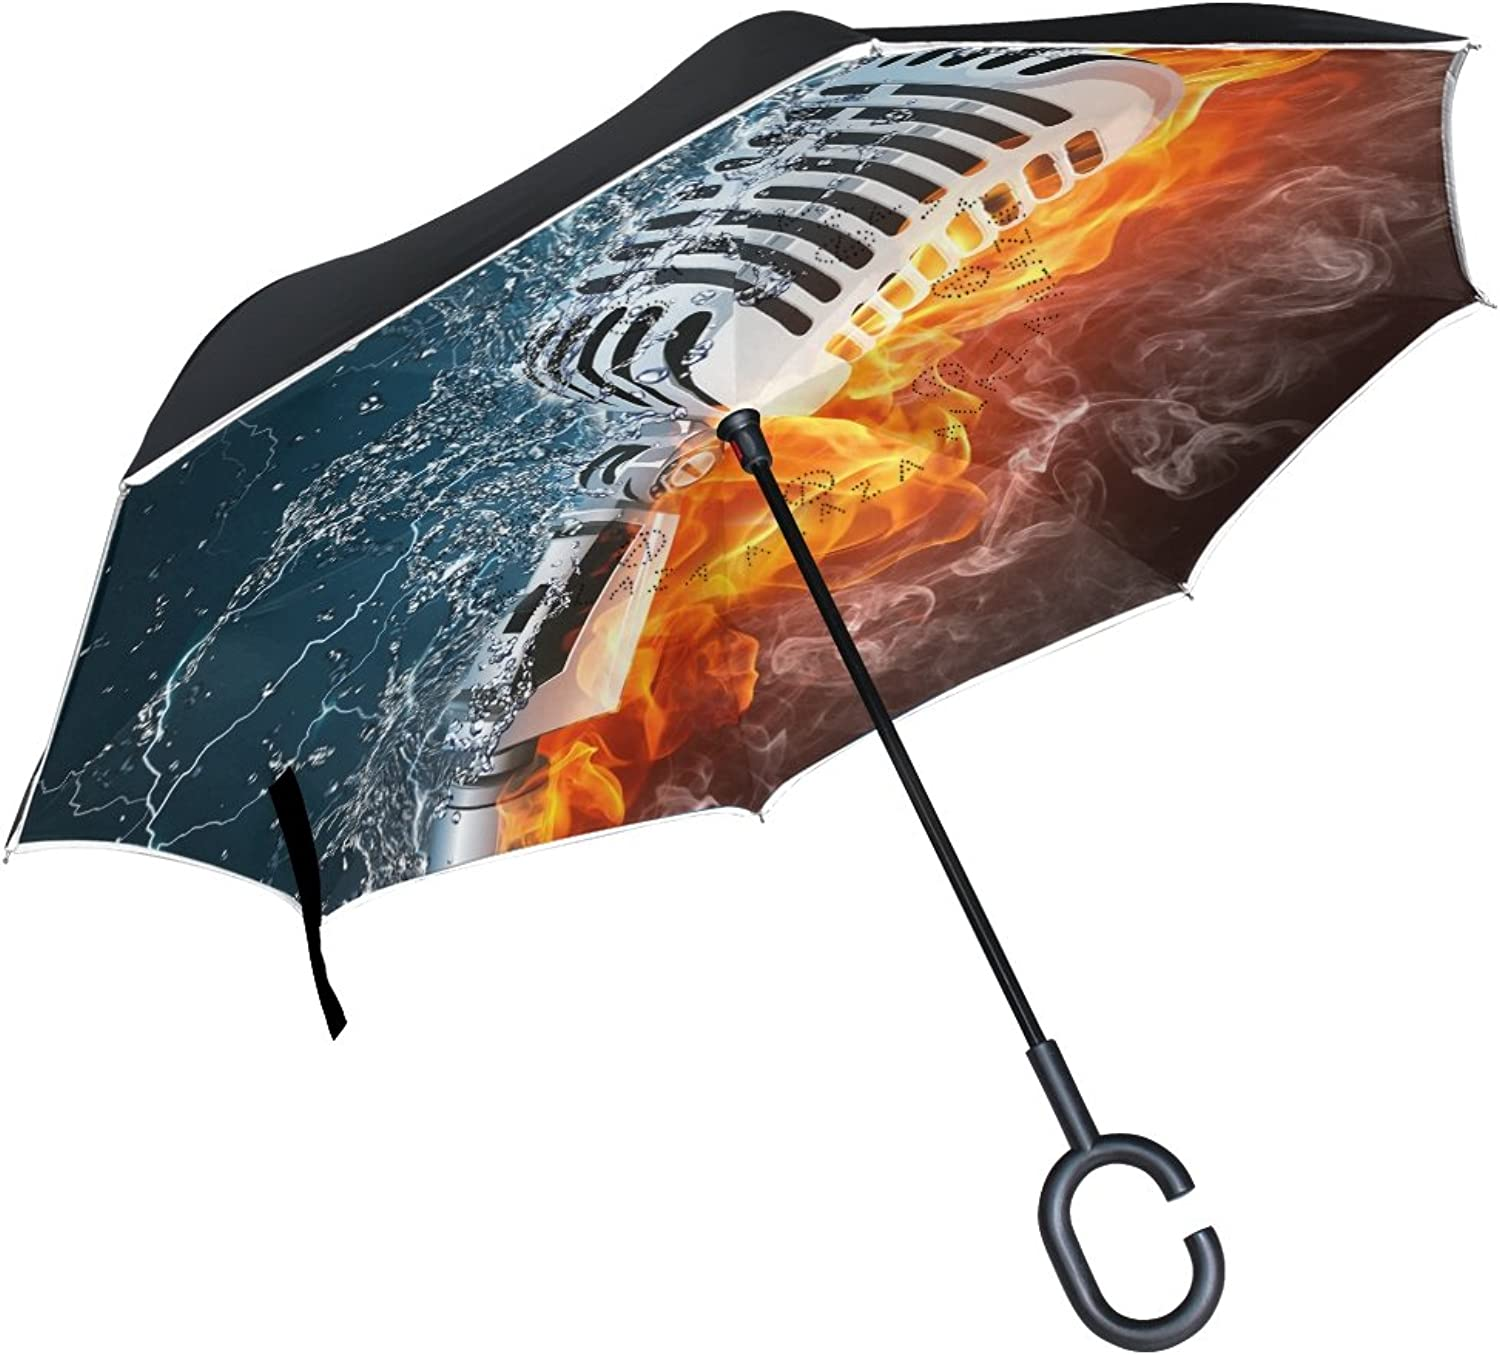 FOLPPLY Ingreened Umbrella Fire and Water Microphone Musical,Double Layer Reverse Umbrella Waterproof for Car Rain Outdoor with CShaped Handle